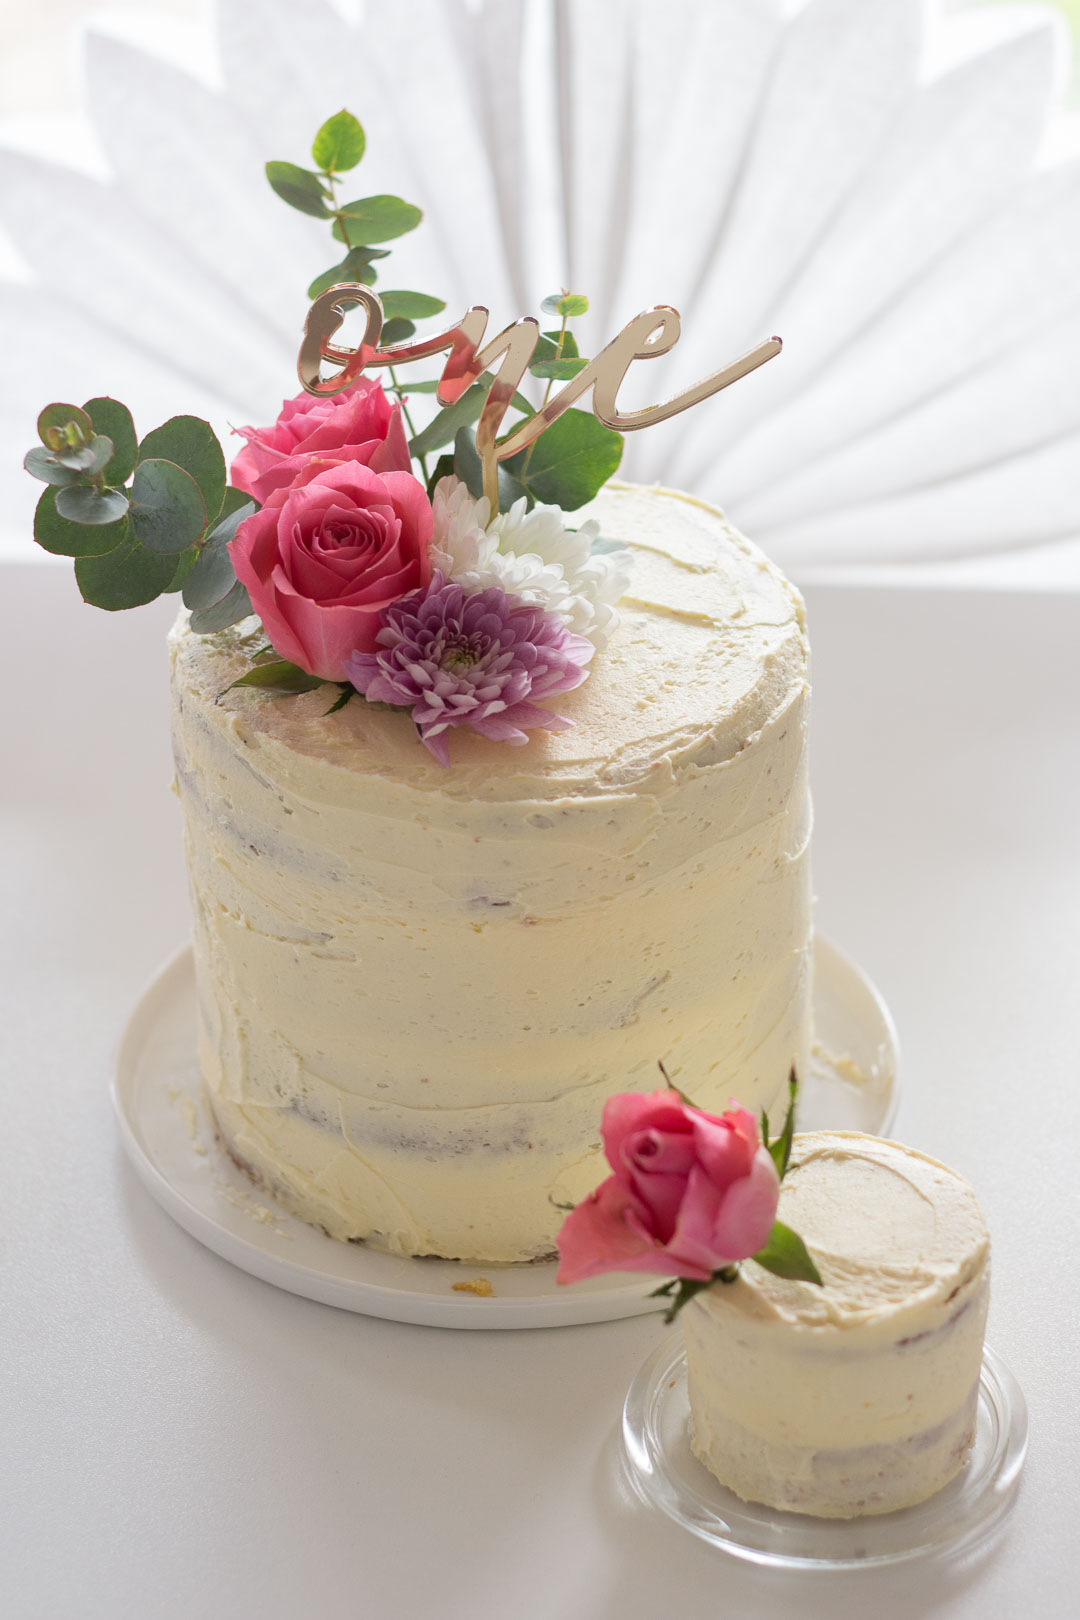 Floral Decorations for smash cake // Pretty First Birthday Cake